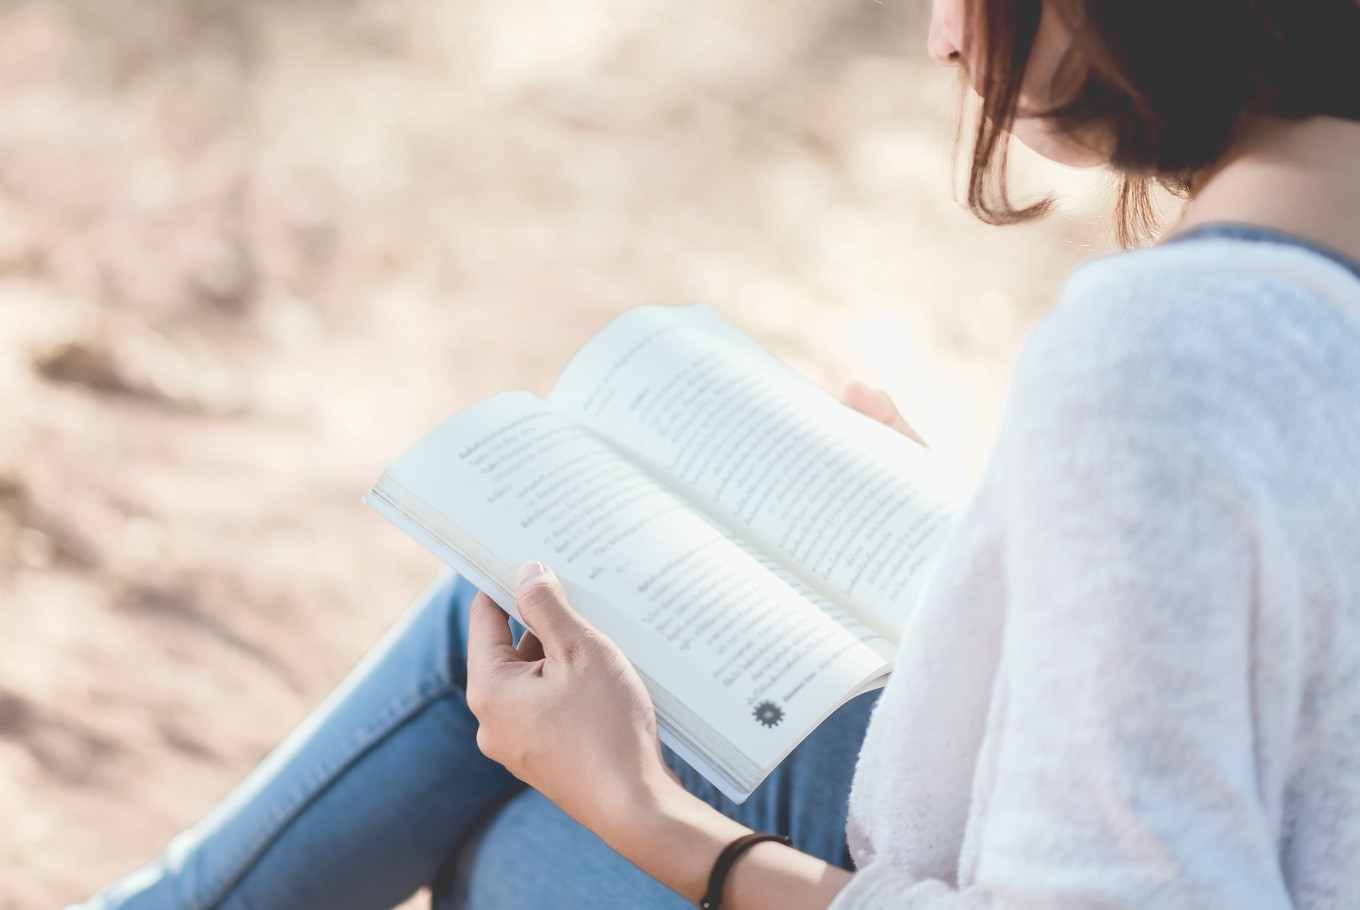 Self-Help Books Induce Stress